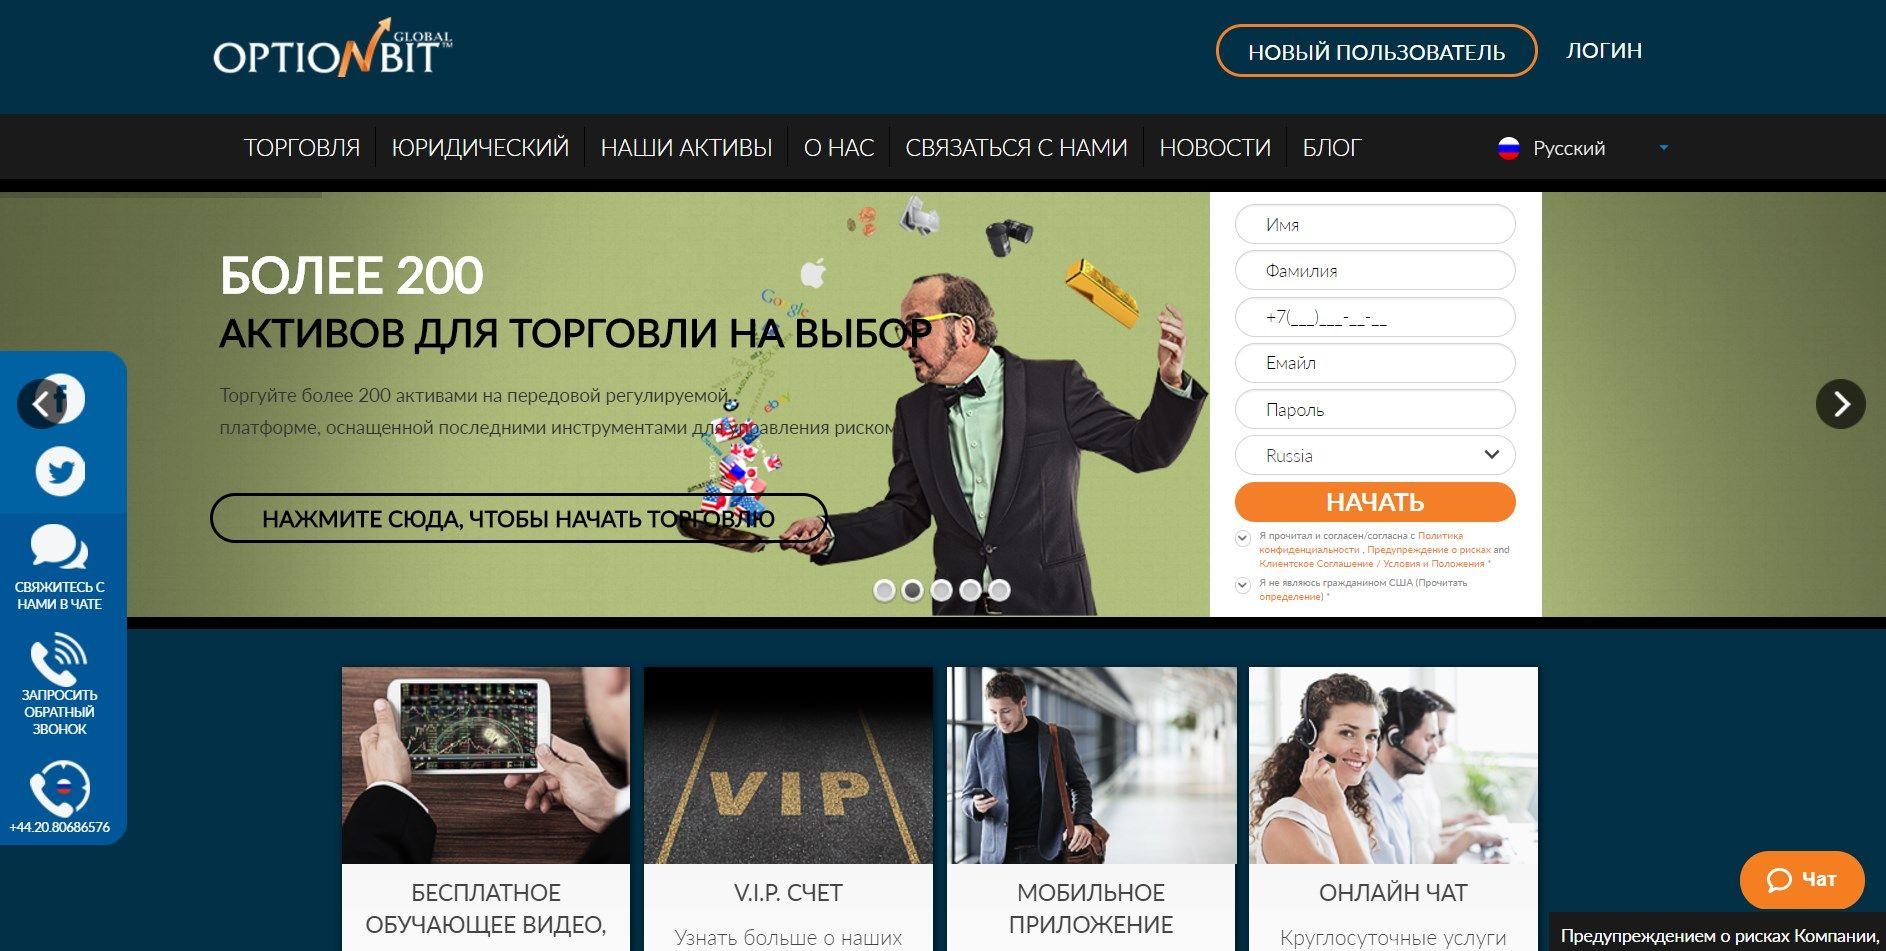 Платформа OptionBit – Tradelogic, отличается функциональностью